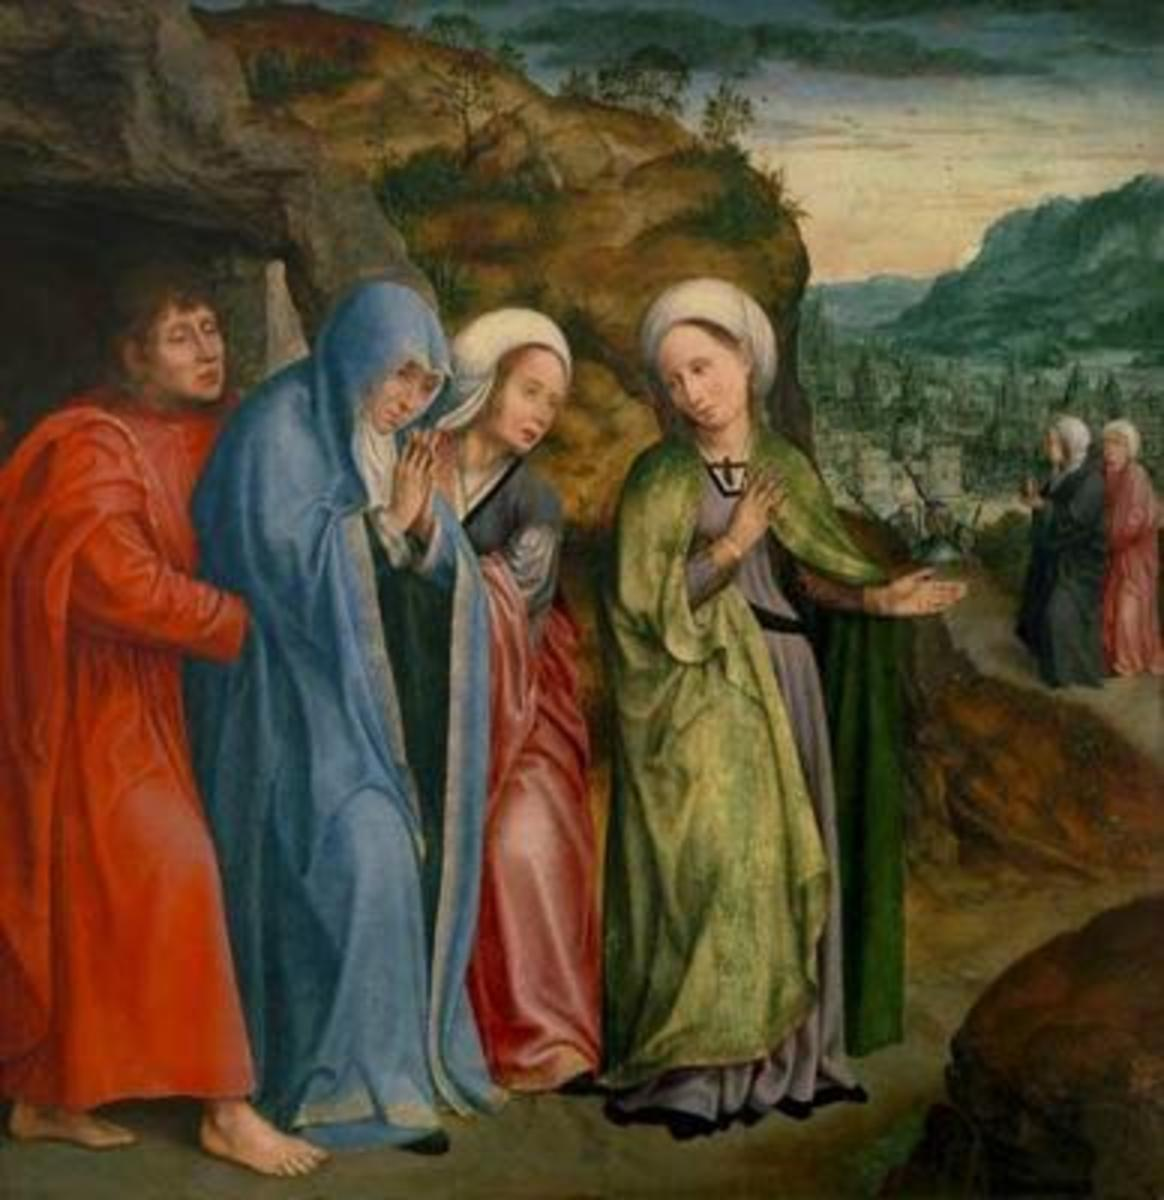 6 Women Named Mary in the Bible